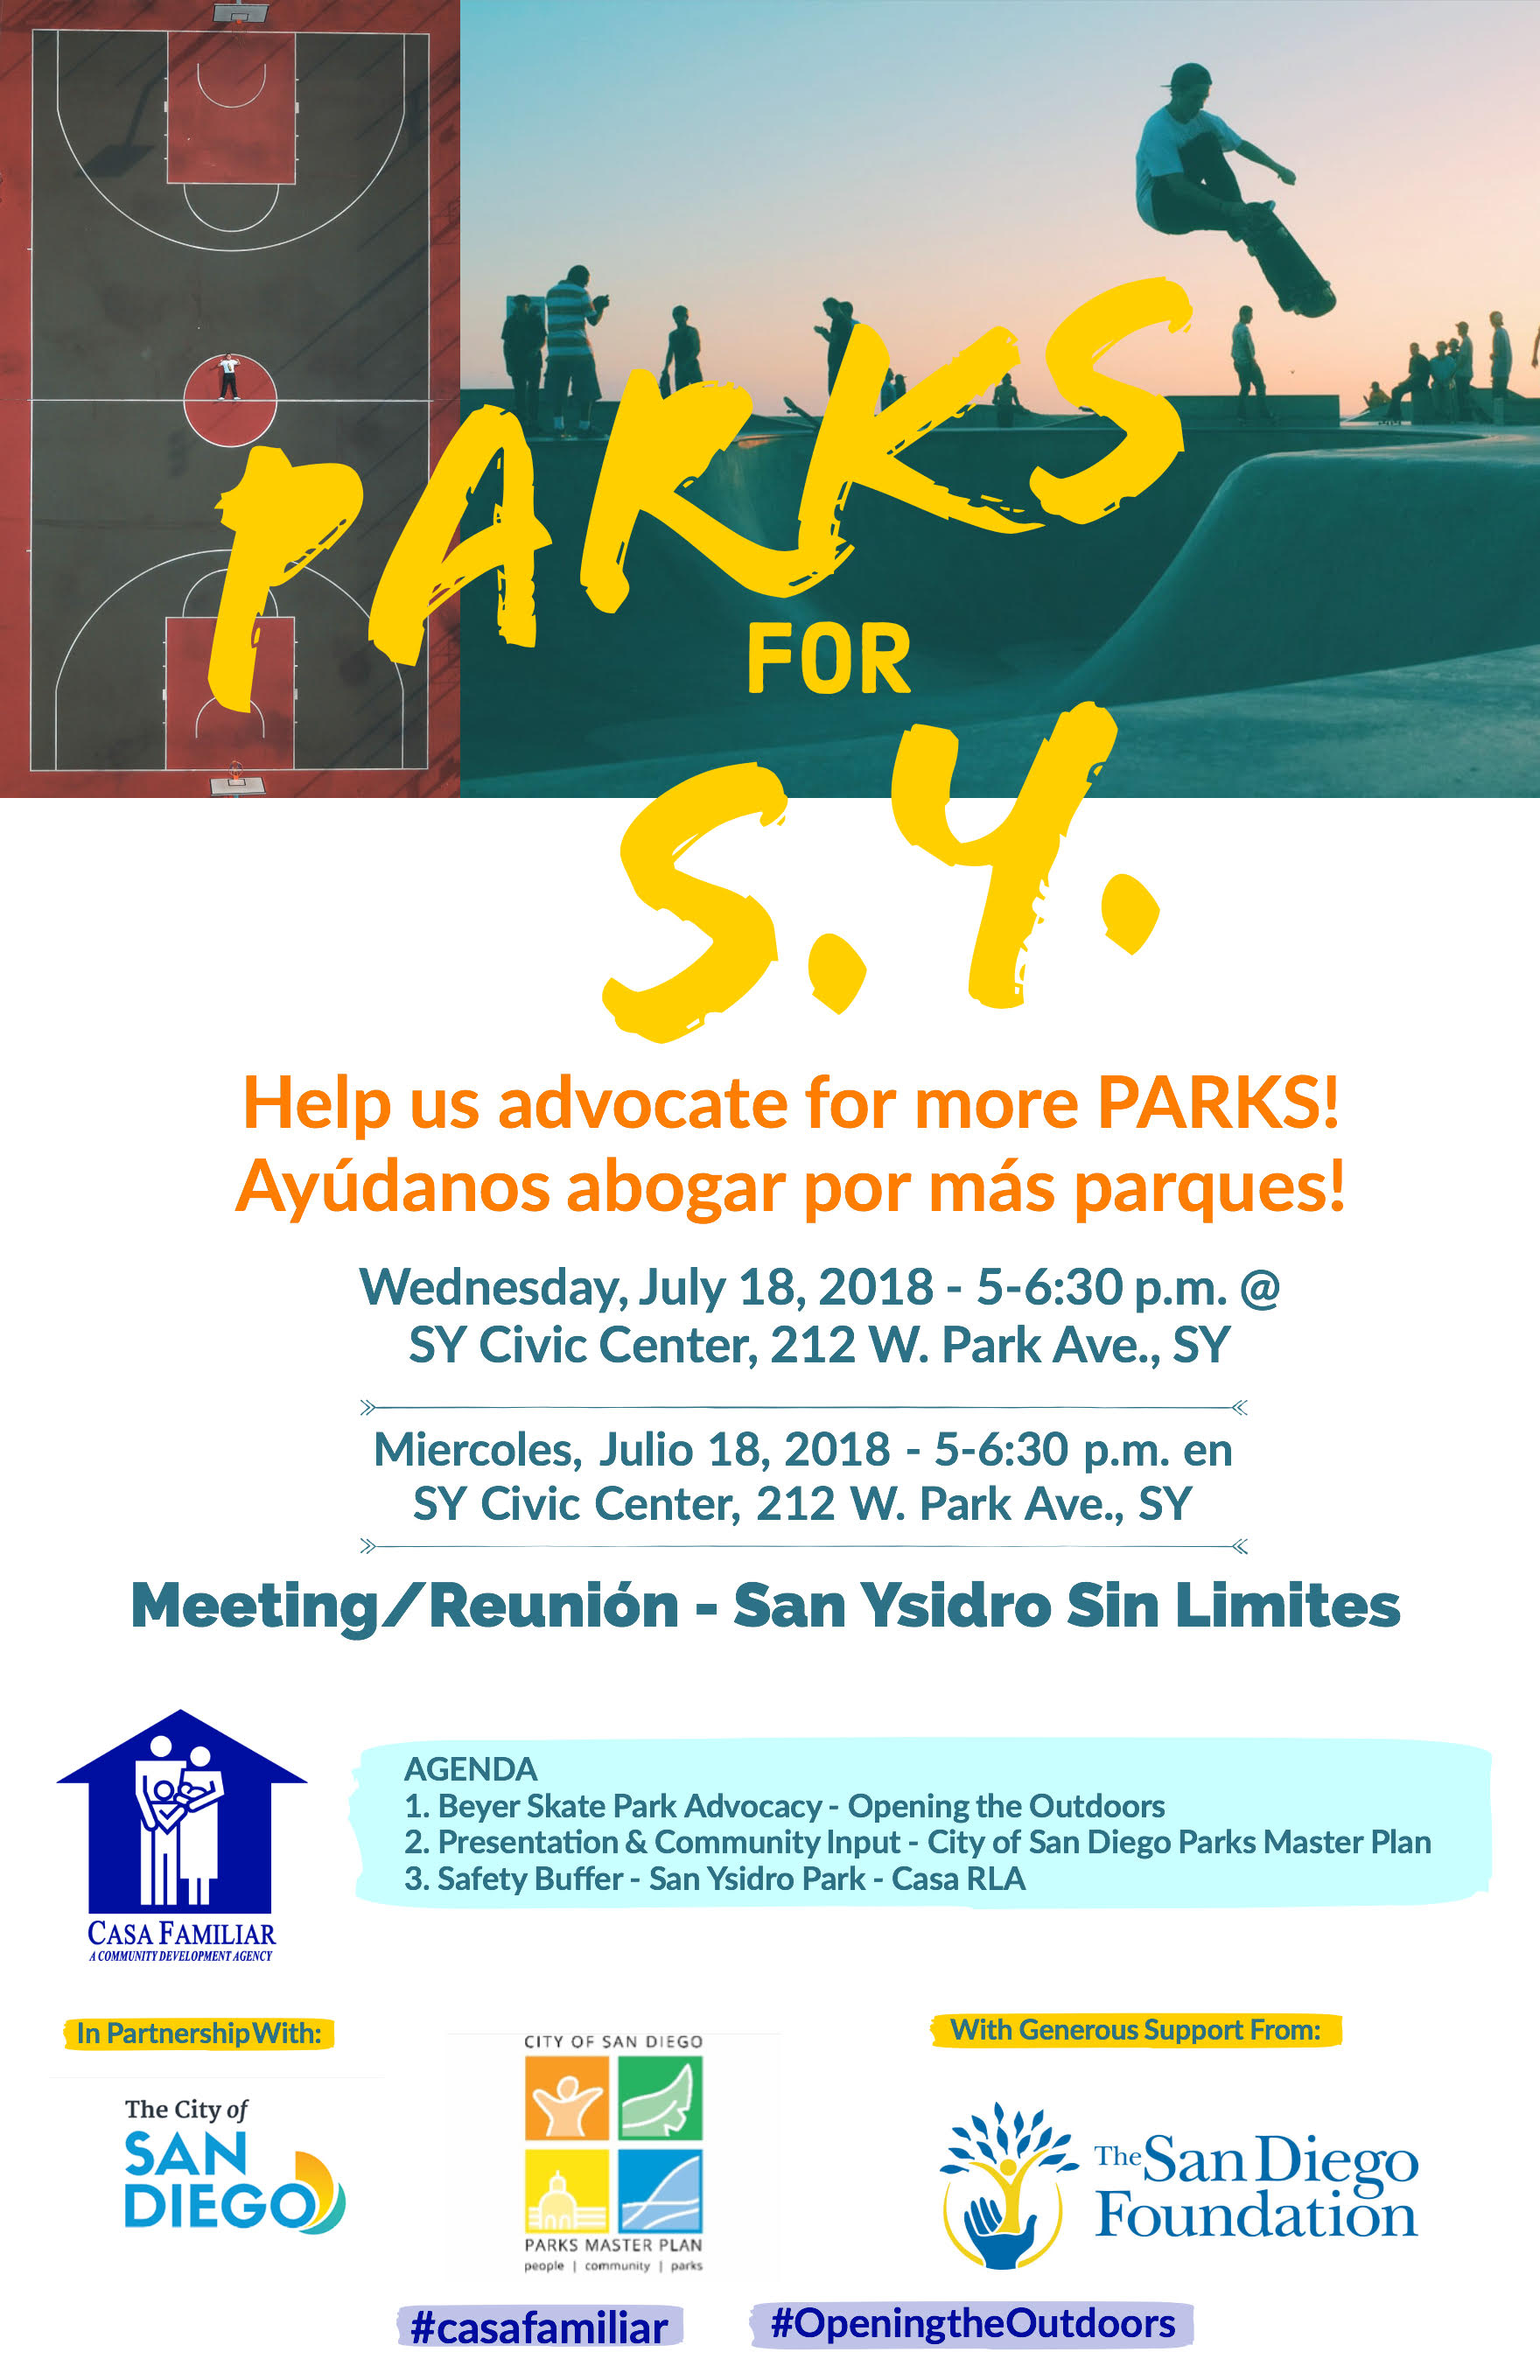 Sin Límites meeting: Parks for San Ysidro. Wed july 18th.